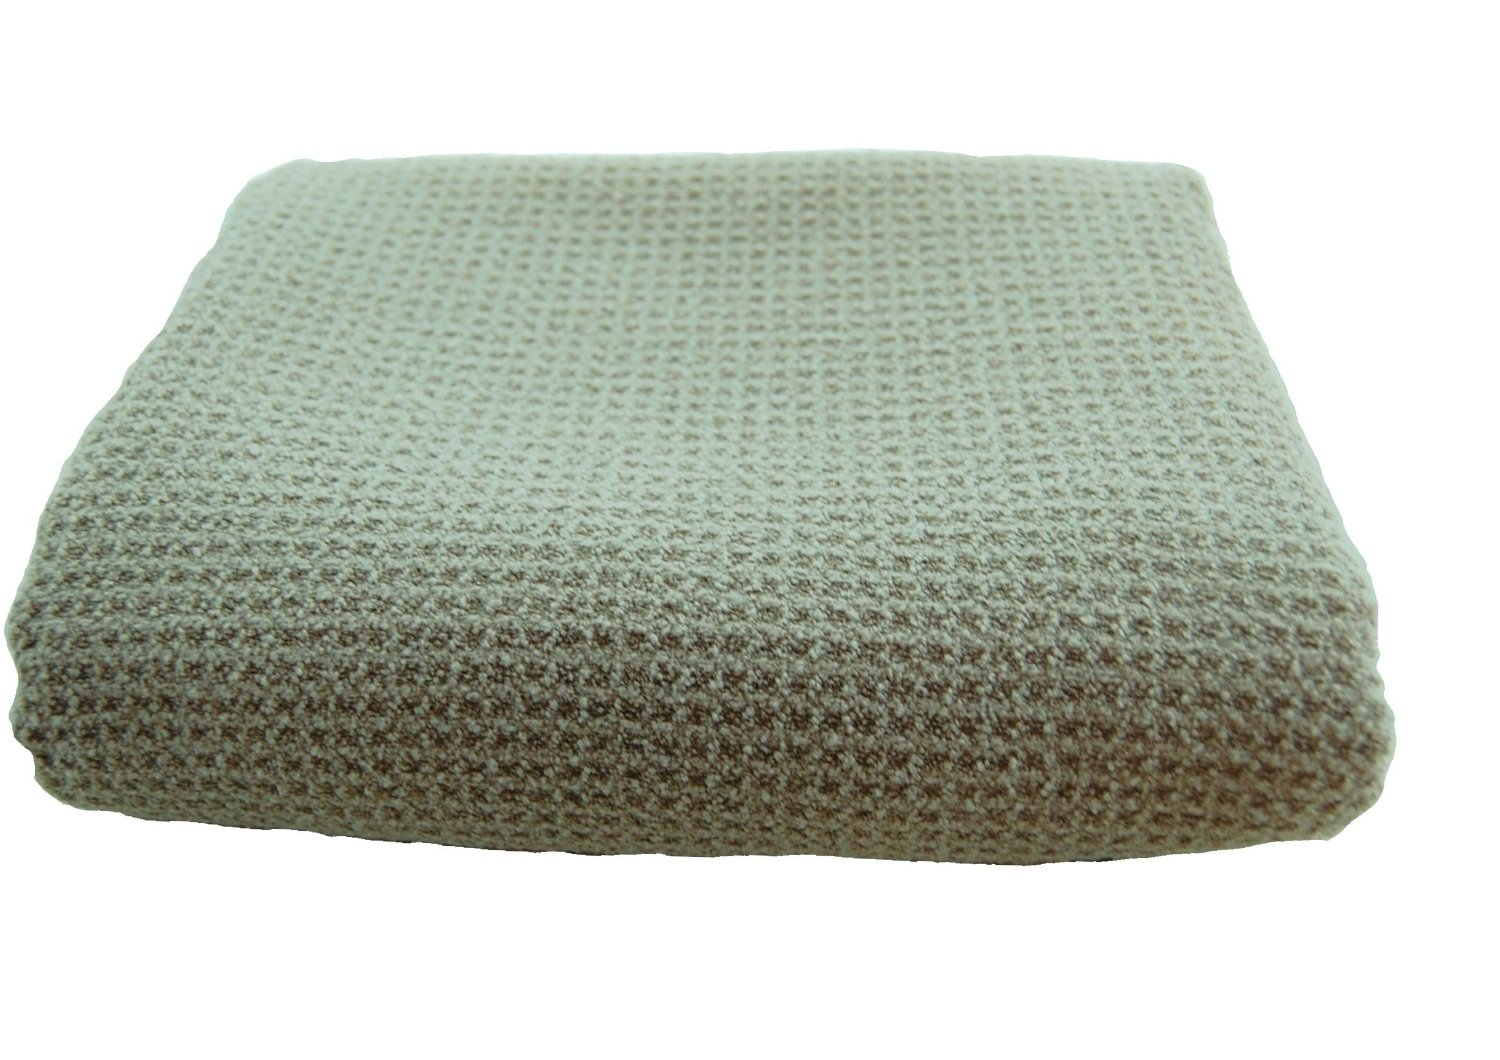 Fina Ultra Absorbent *Waffle Weave* Microfiber Bath Towel in Sage(29 X 55 Inches) review